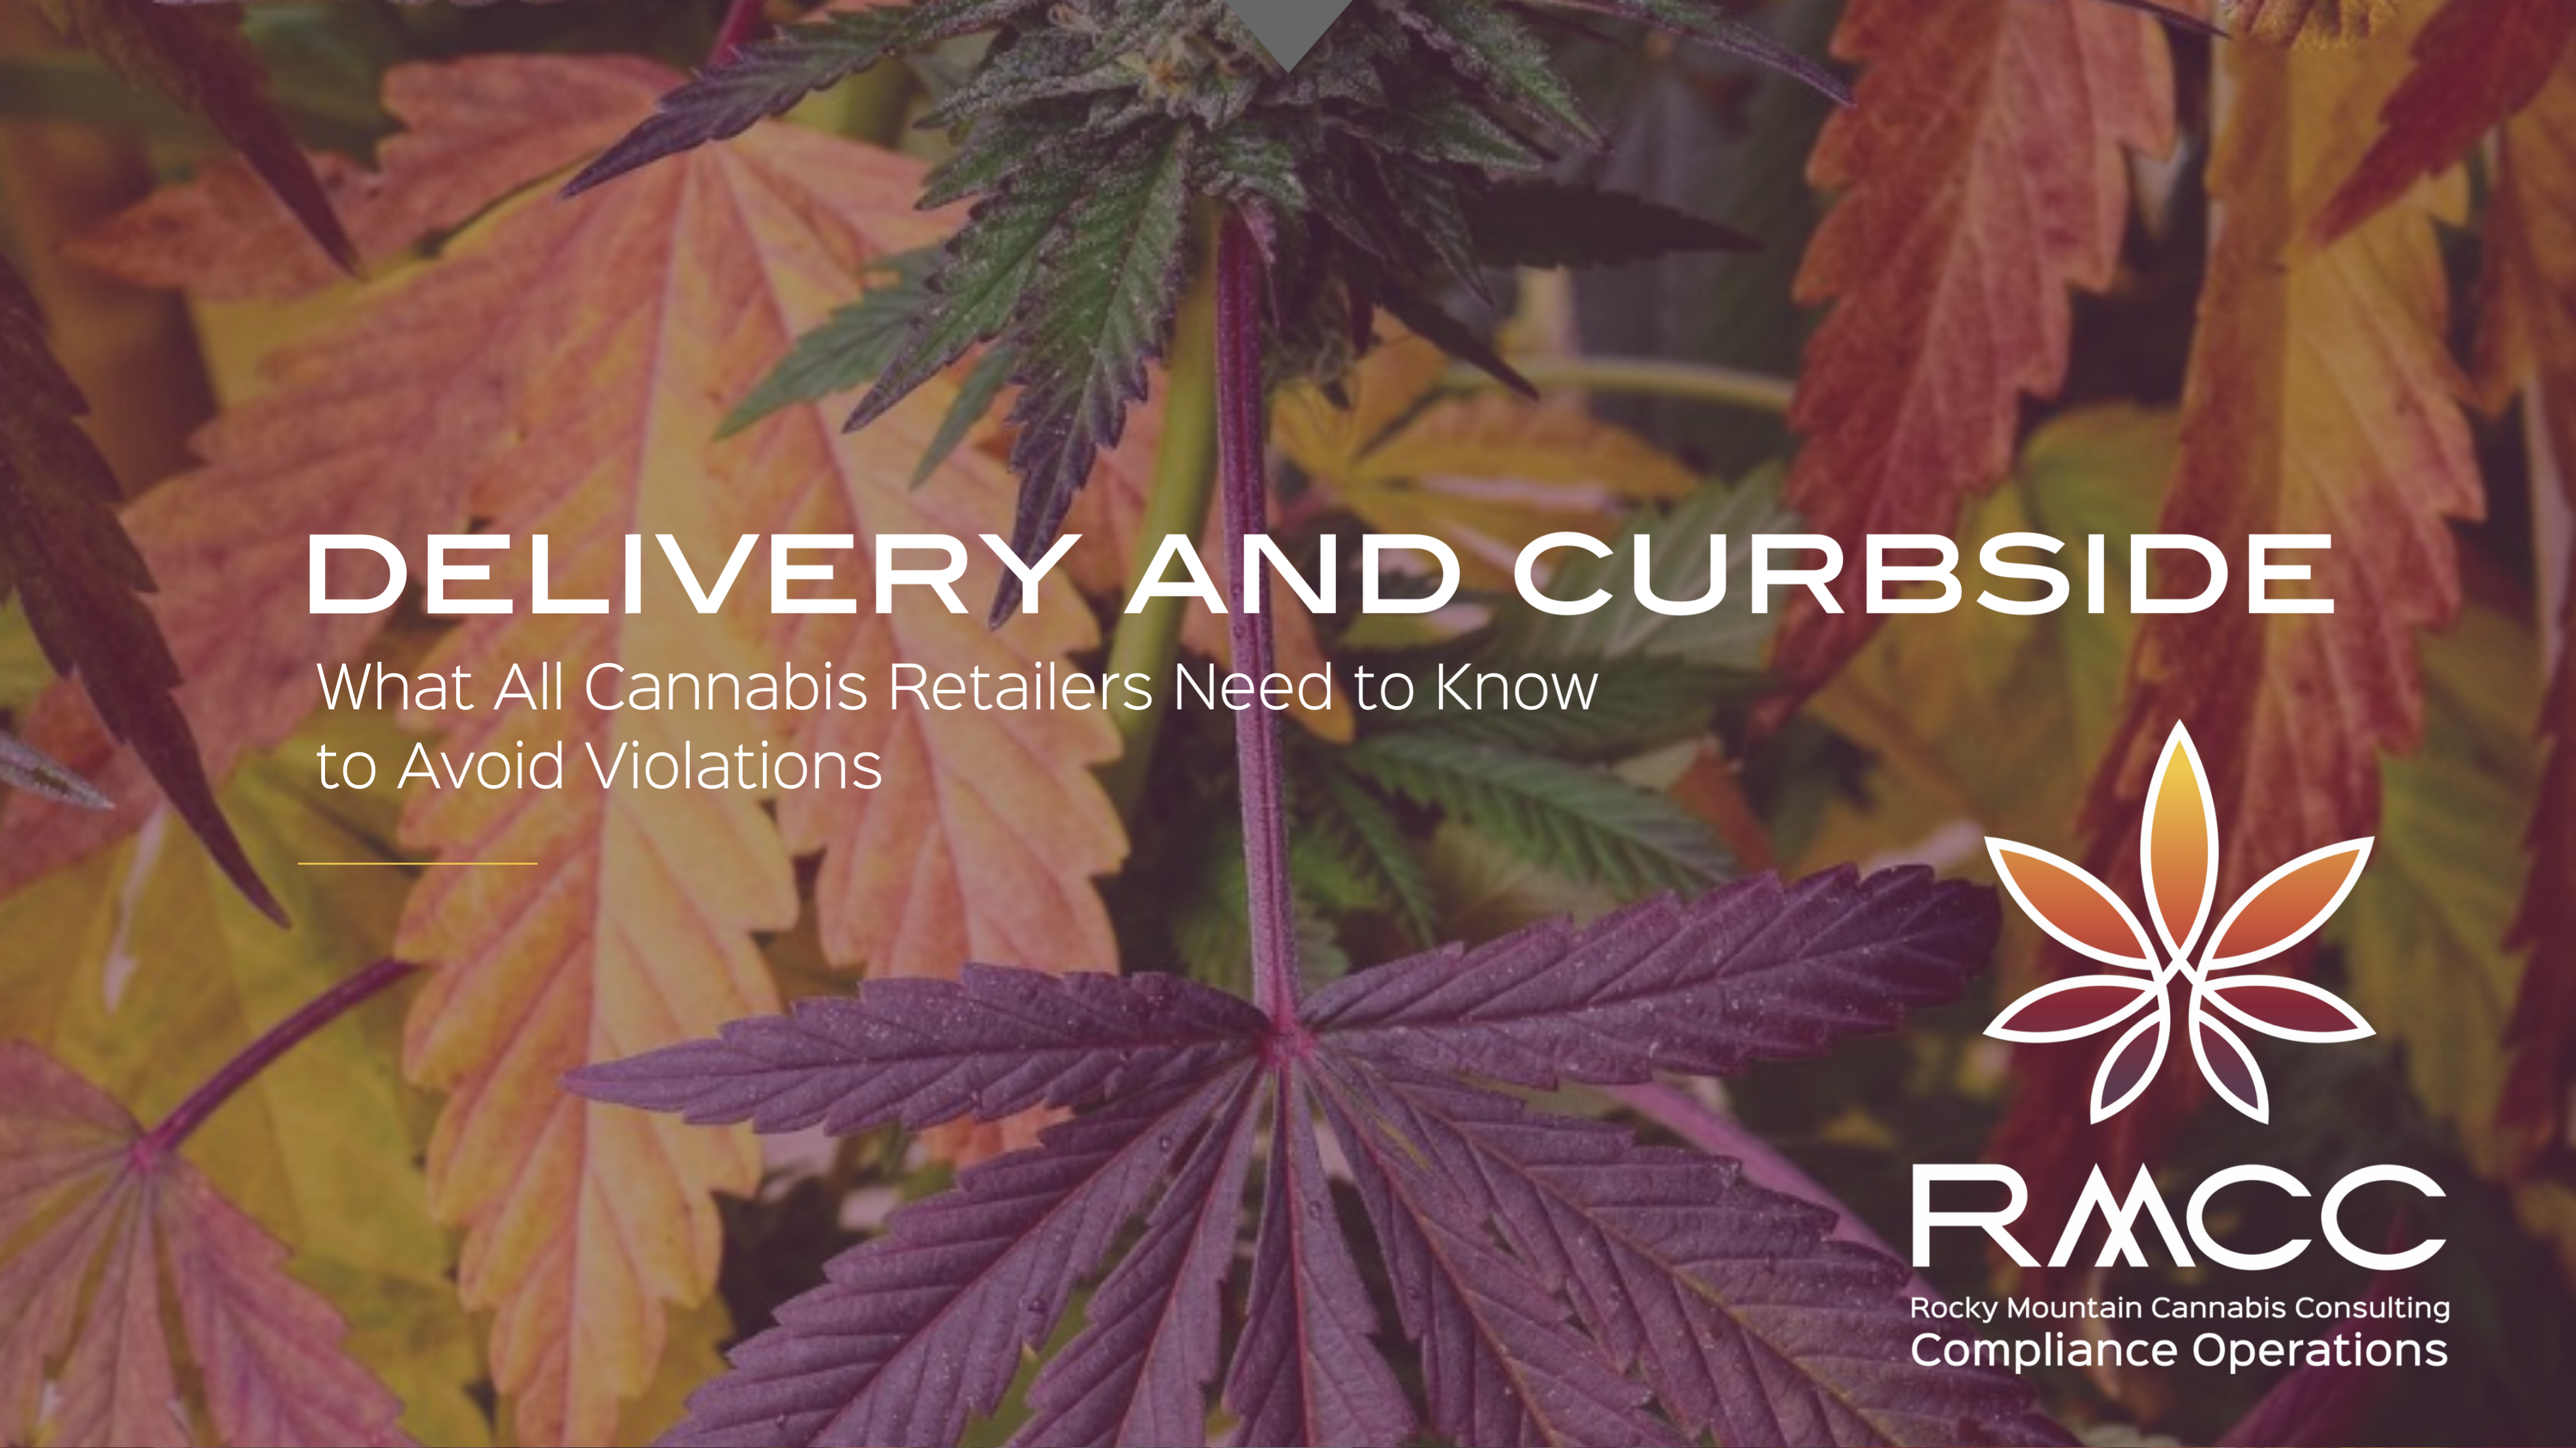 DELIVER AND CURBSIDE WHAT ALL CANNABIS RETAILERS NEED TO KNOW TO AVOID VIOLATIONS